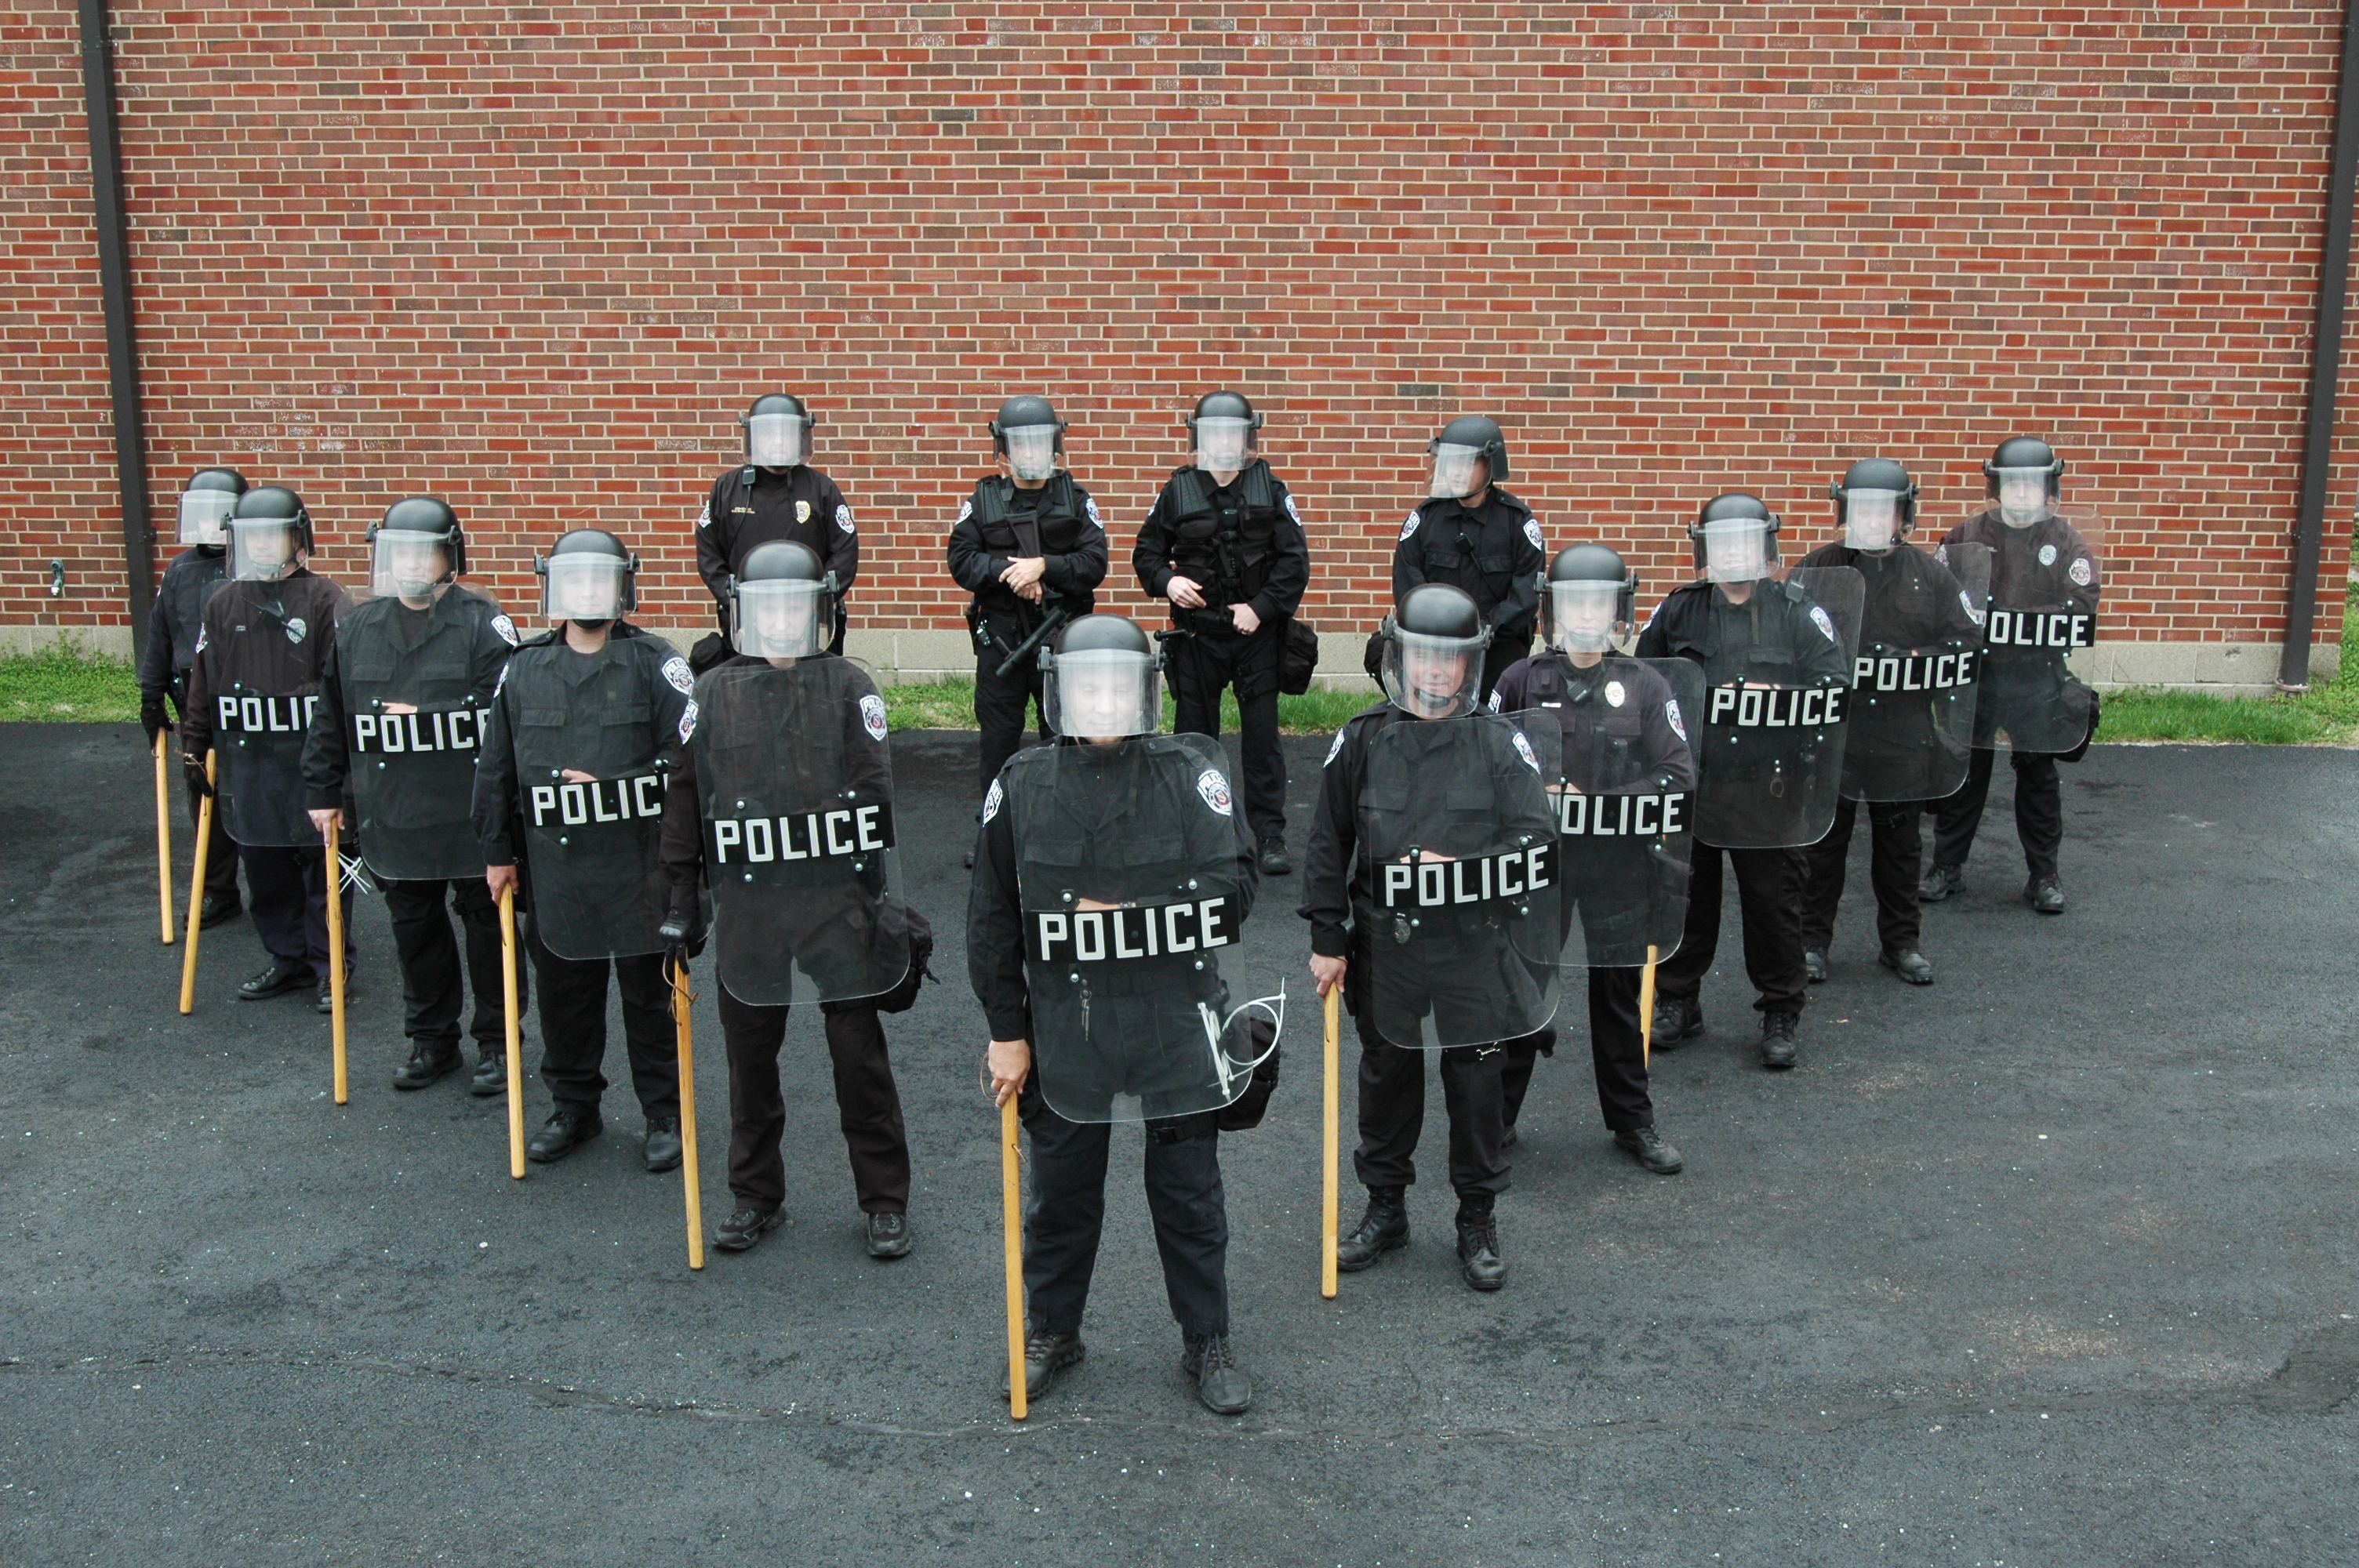 Civil Disturbance Unit Group Photo